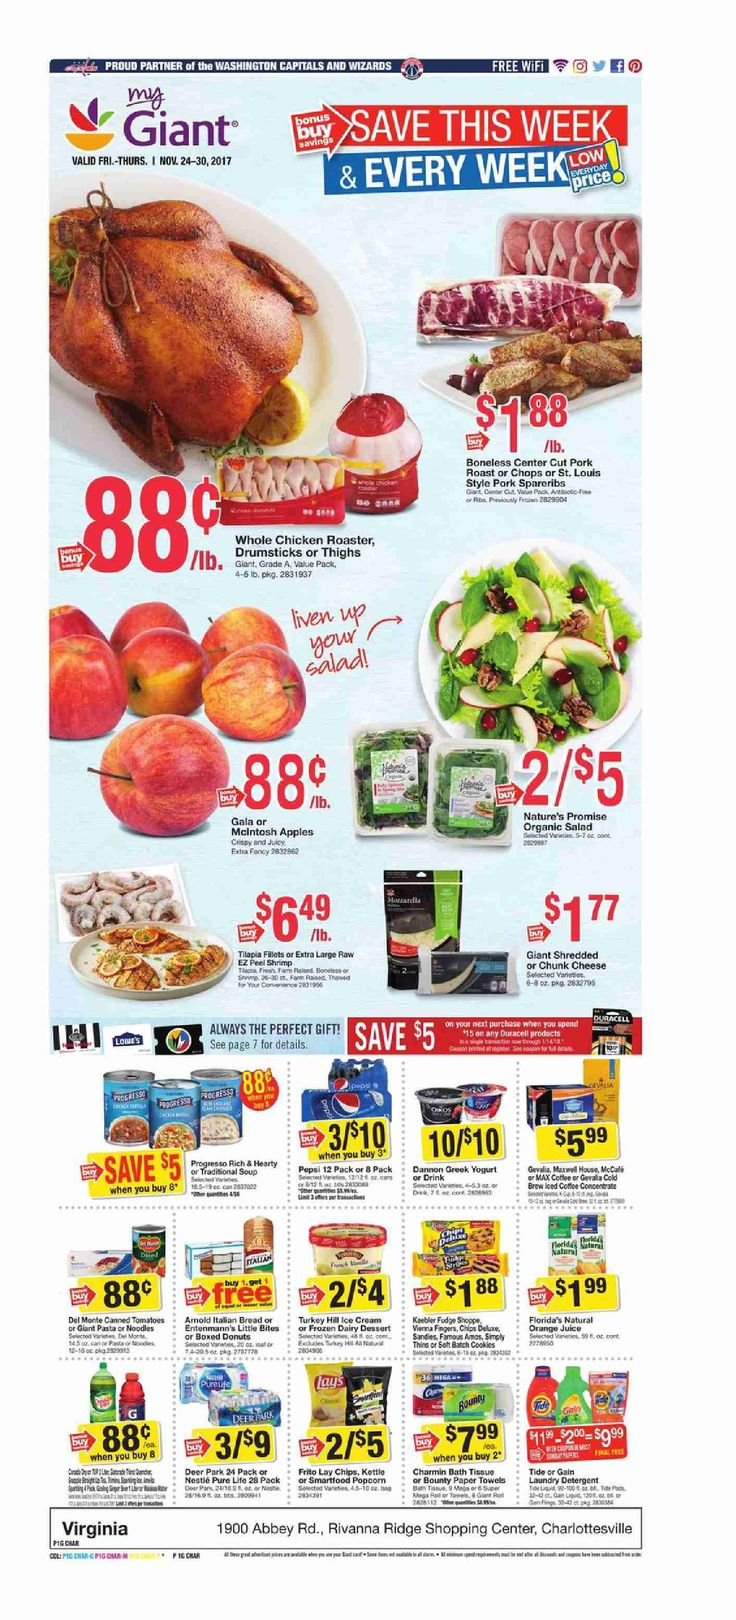 Giant Food Weekly Ad November 24 - 30, 2017 - http://www.olcatalog.com/grocery/giant-food-weekly-ad.html